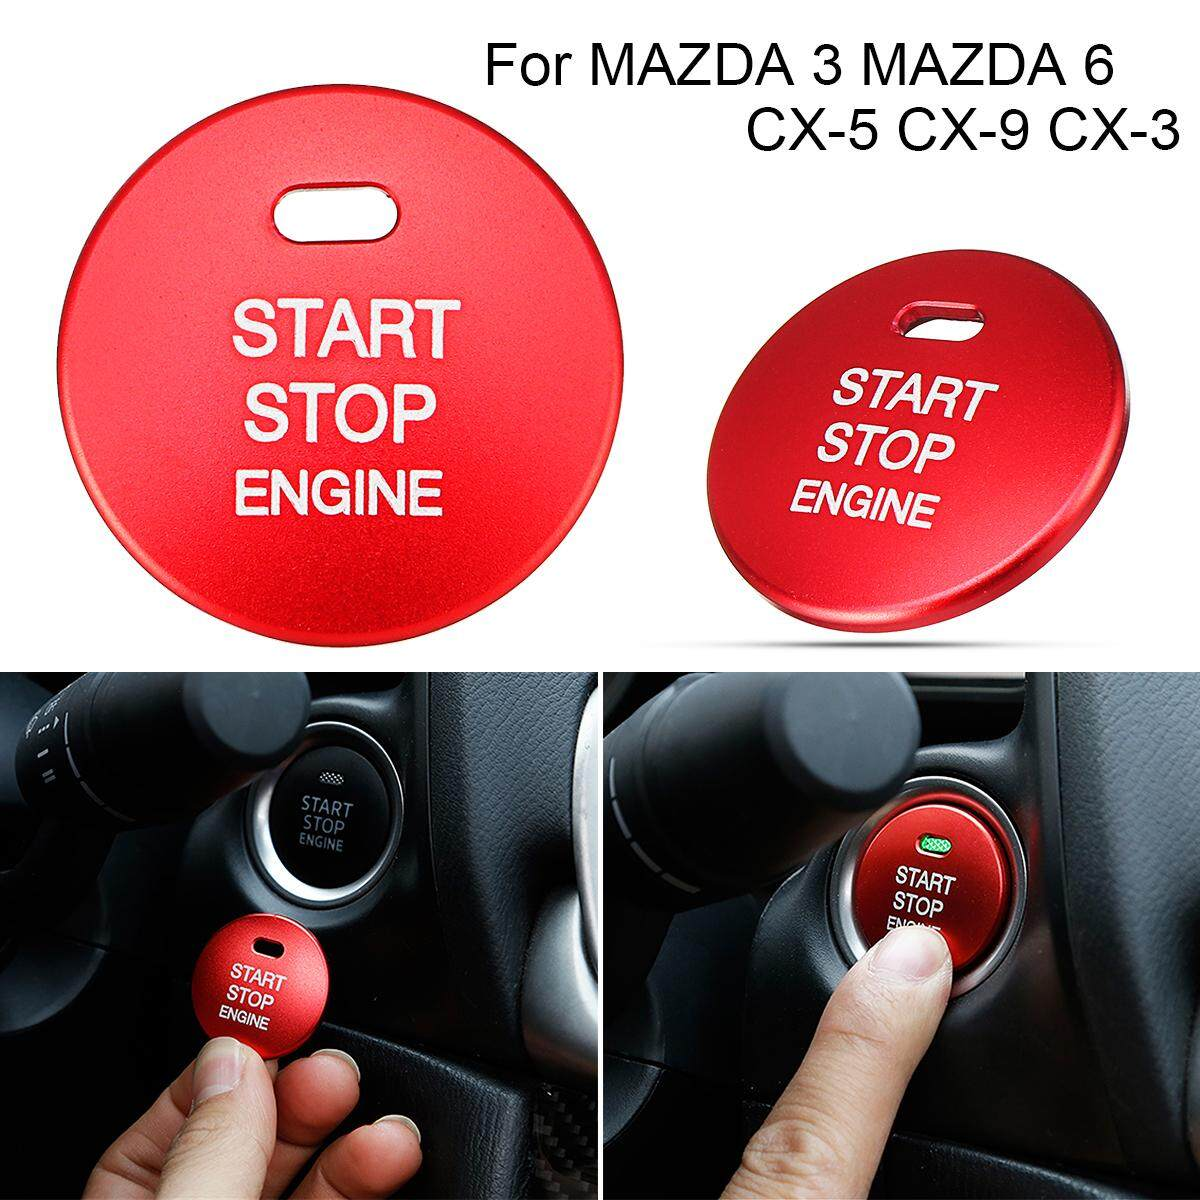 Aluminum Engine Start Button Cover Cap Trim For Mazda 3 Mazda 6 Cx-5 Cx-9 Cx-3 - Intl By Paidbang.